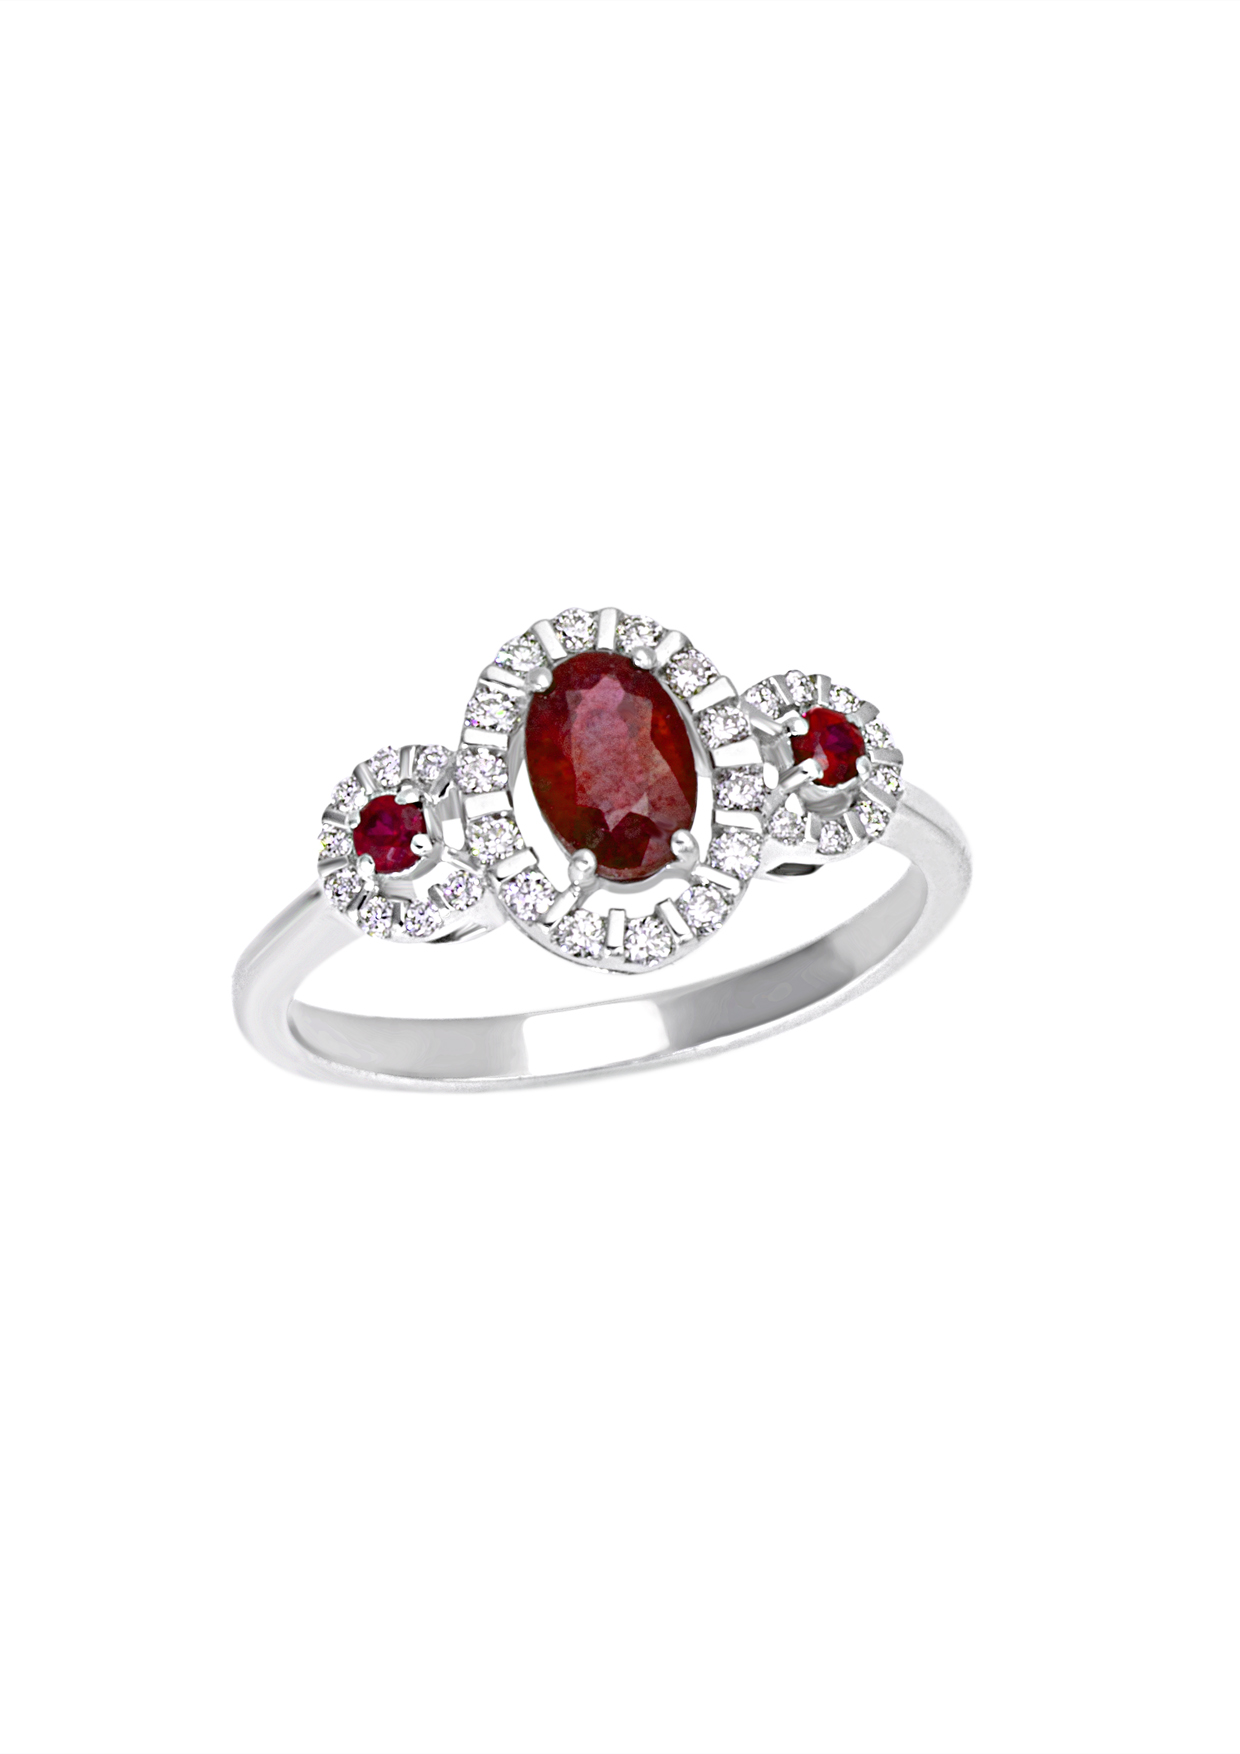 Bliss Ring Elenoire white gold with diamonds and rubies 20069528